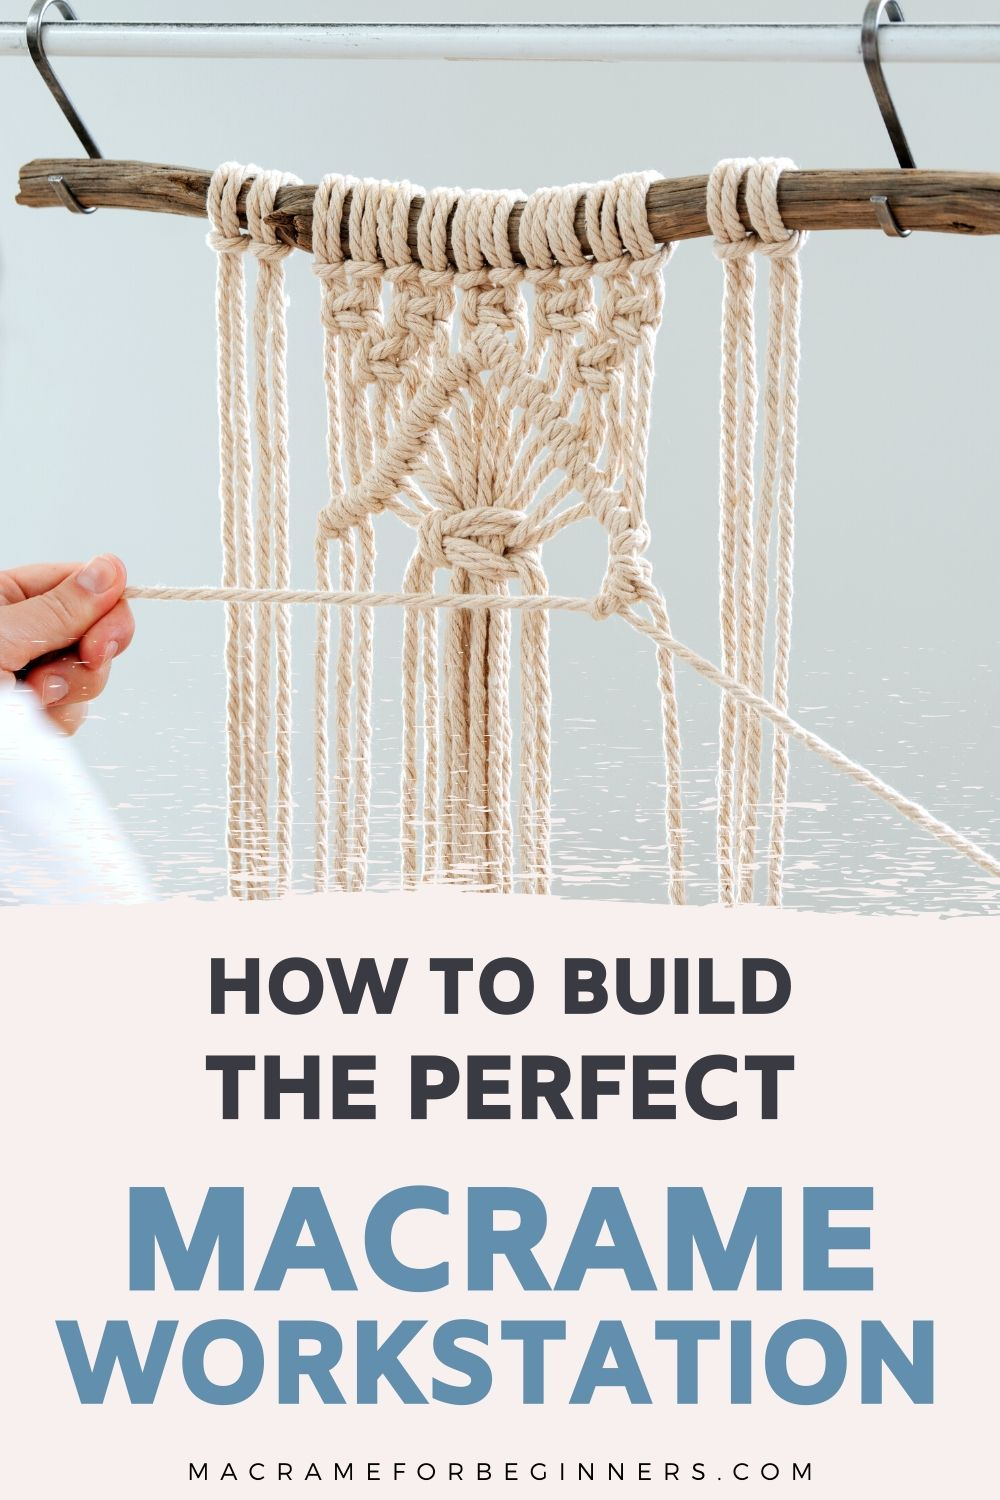 How To Build The Perfect Macrame Workstation – 10 Essential Macrame Tools